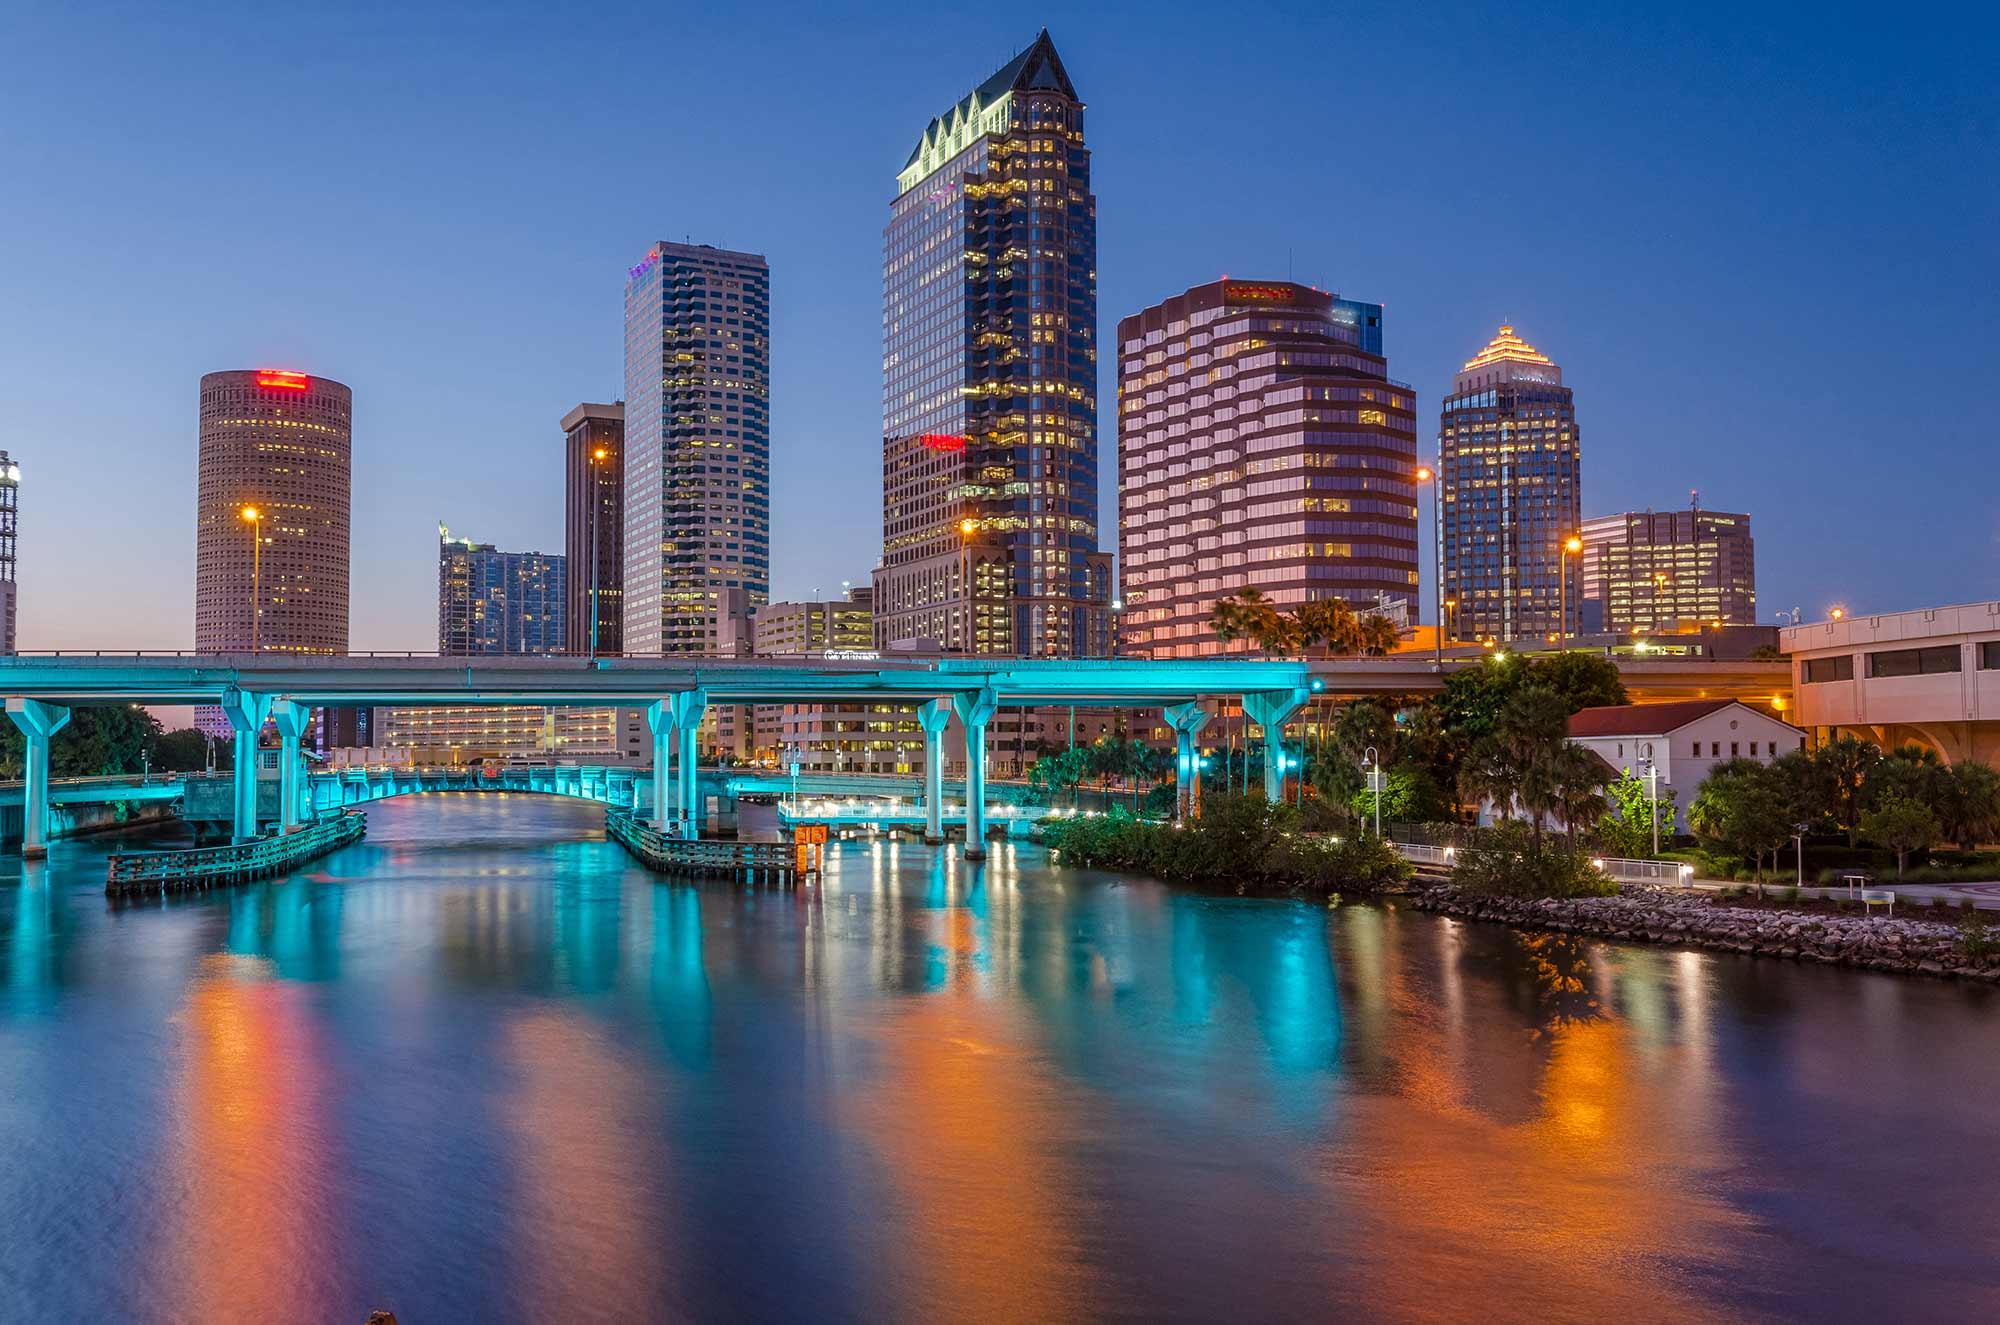 Your loan is here, Tampa!